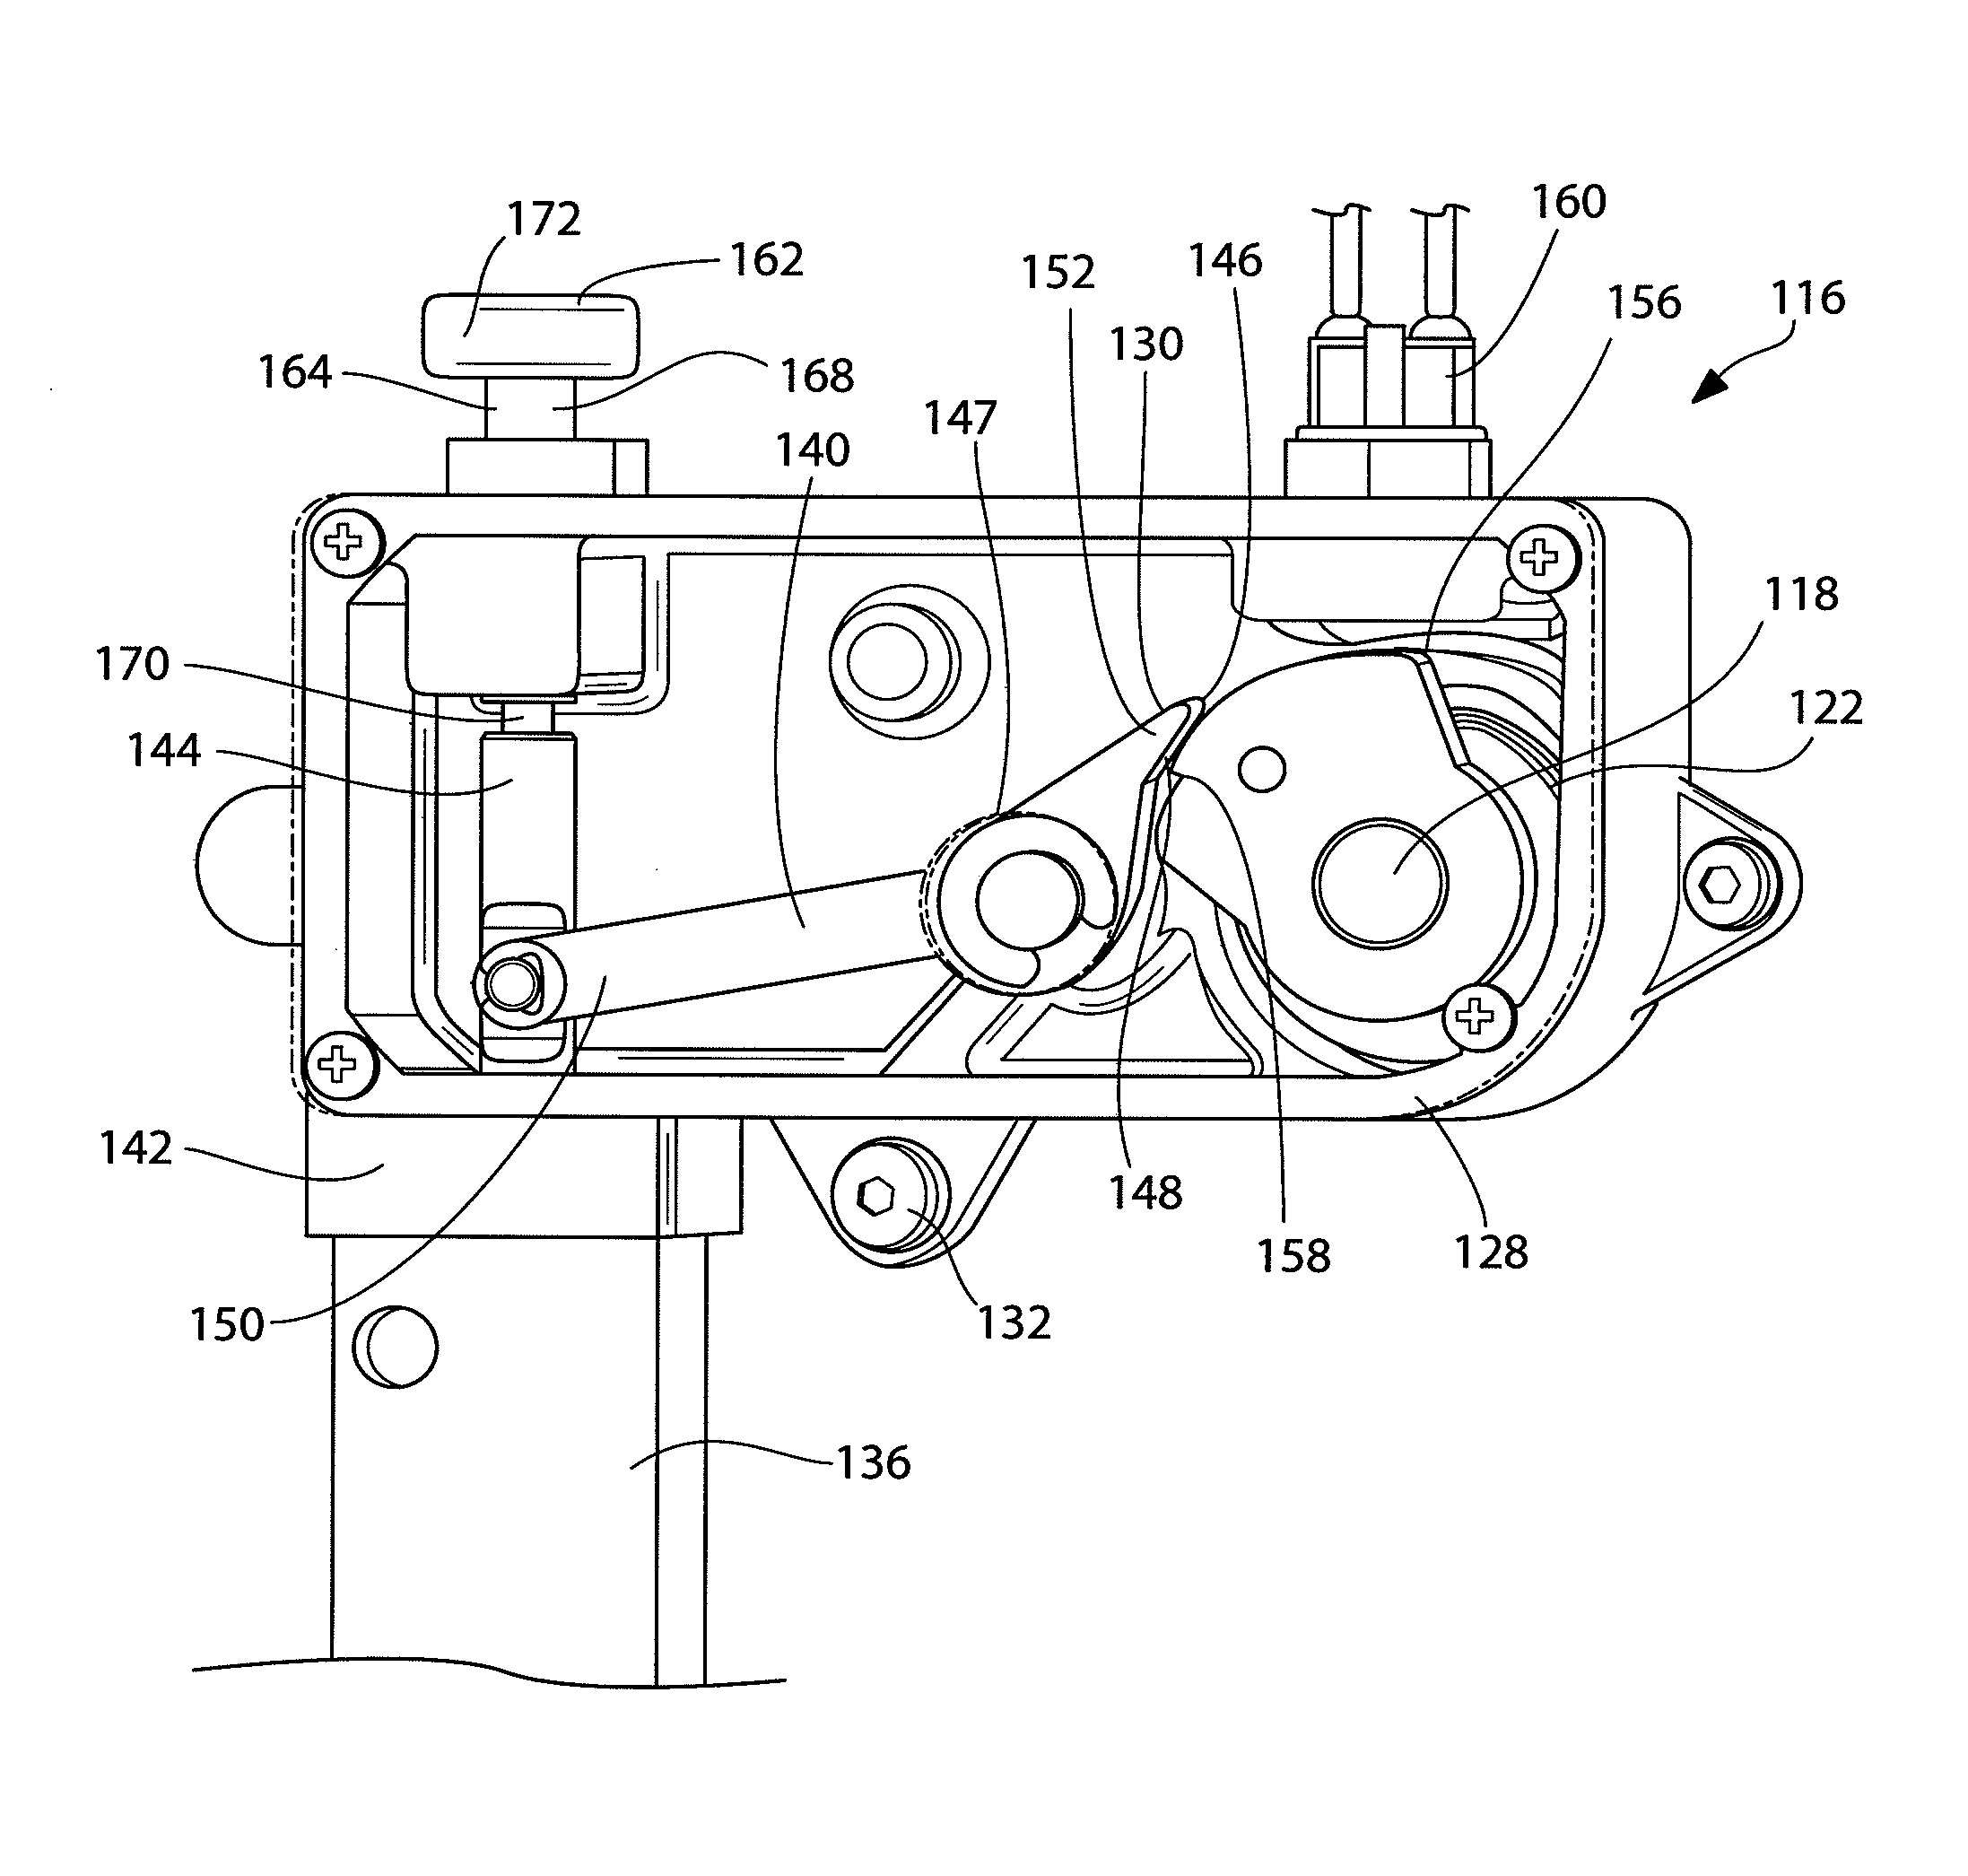 Roda Deaco Valve Wiring Diagram 31 Images Lug Indoor Main Br24lsp70 Us20130068972a1 20130321 D00000 Patent Us20130068972 Air Shutoff Swing Gate Google Patents